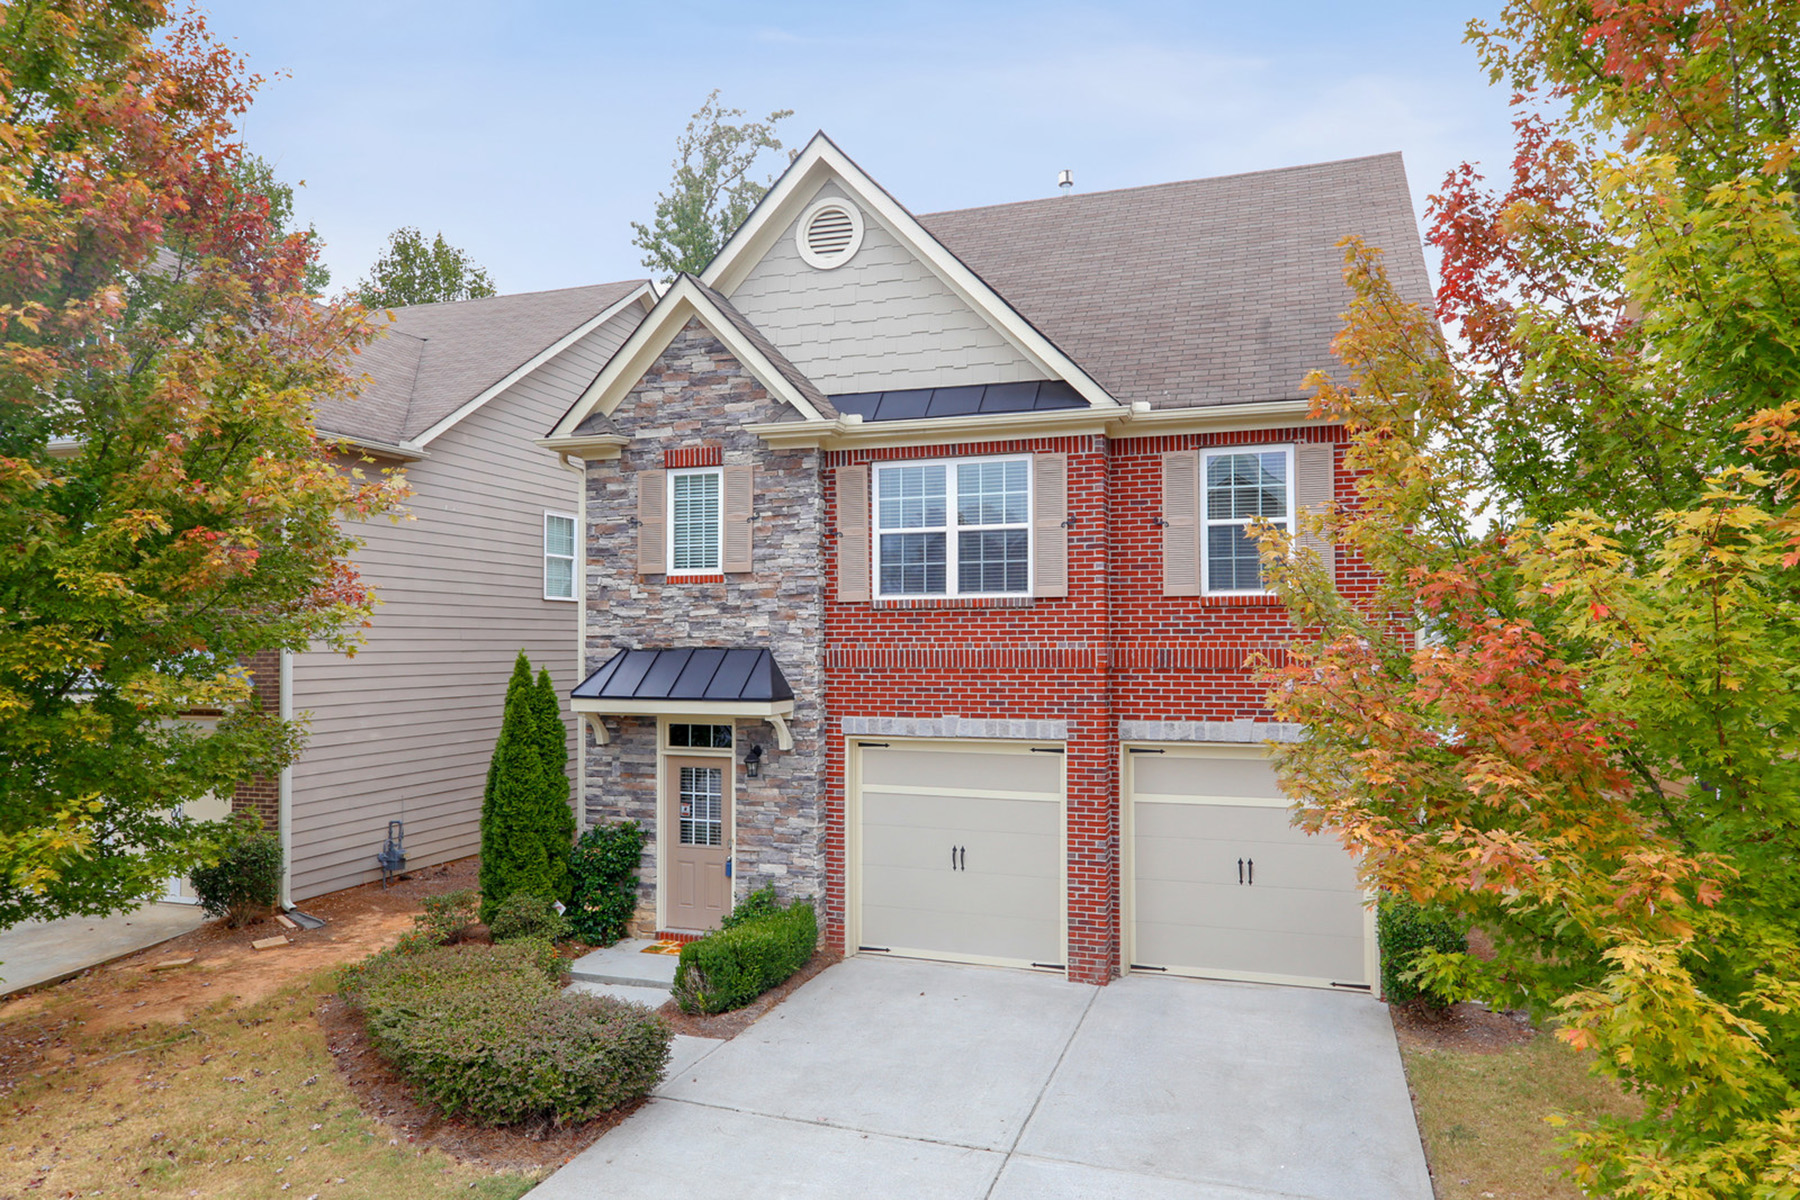 Single Family Homes のために 売買 アット Move-in Ready Open Floor Plan 1649 Sentinel View Dr, Lawrenceville, ジョージア 30043 アメリカ